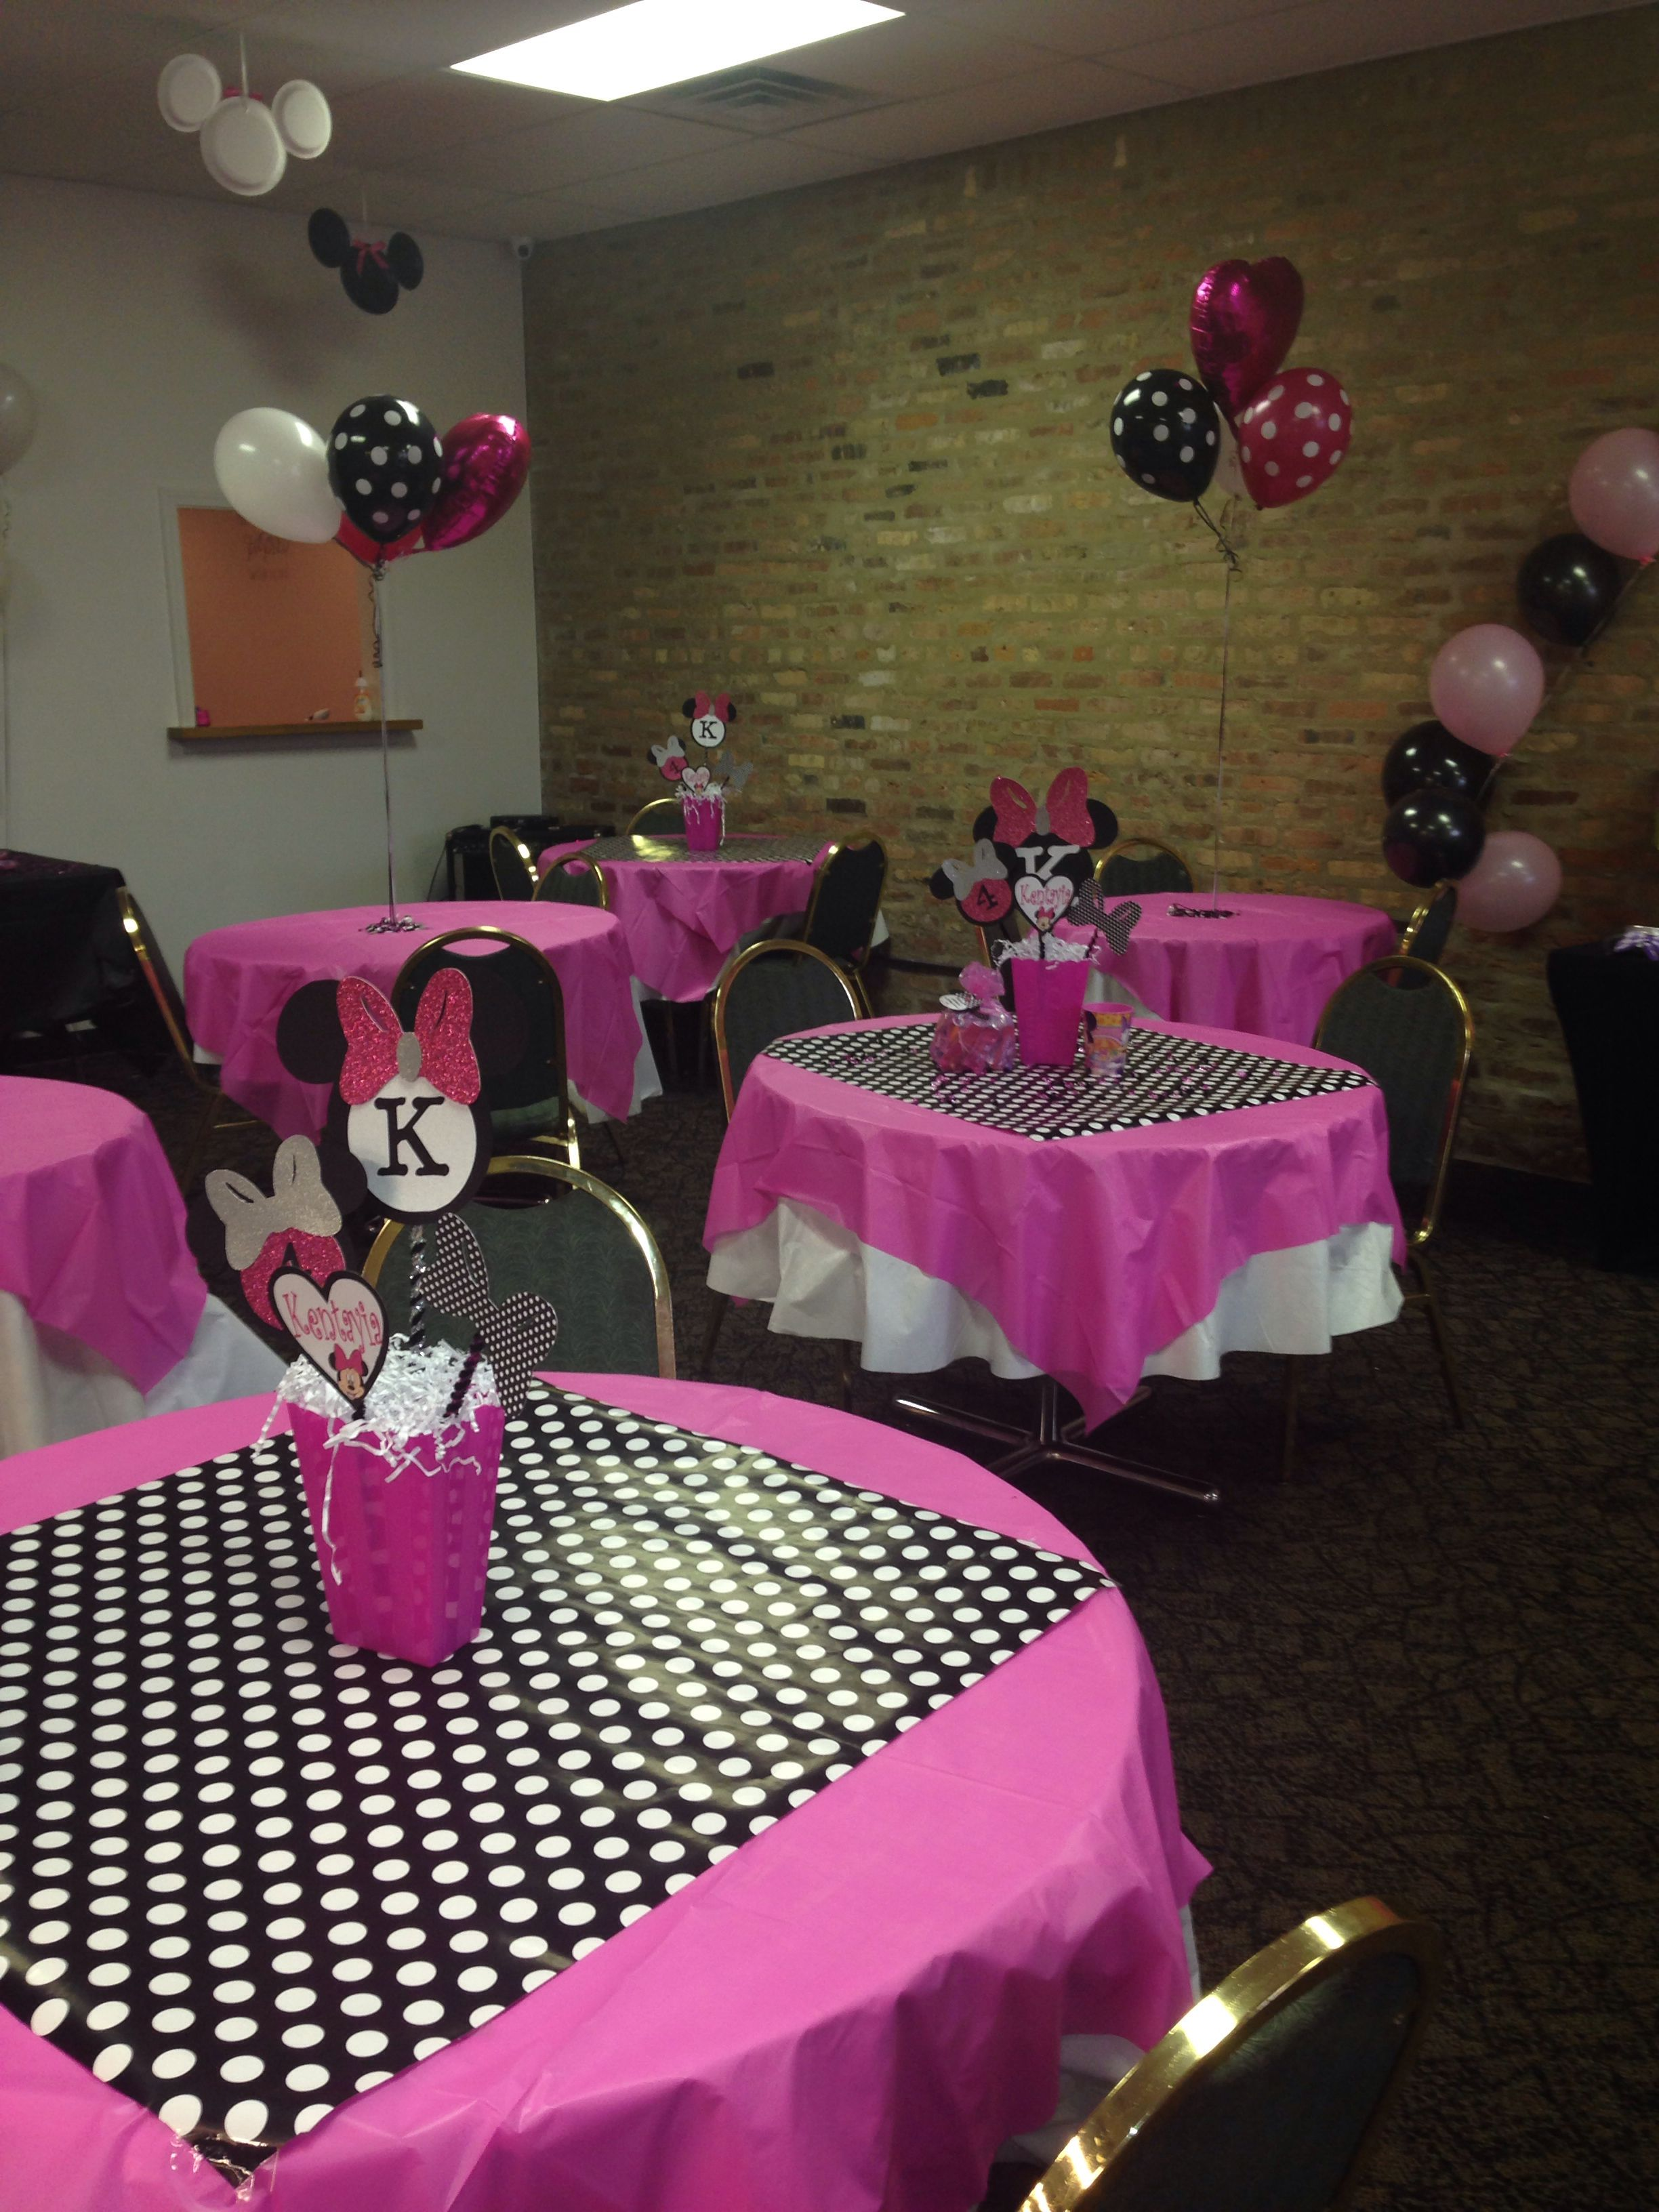 minnie mouse party decorations minnie mouse party in 2019 minnie rh pinterest com Minnie Mouse Centerpieces Unique Minnie Mouse Centerpieces Homemade